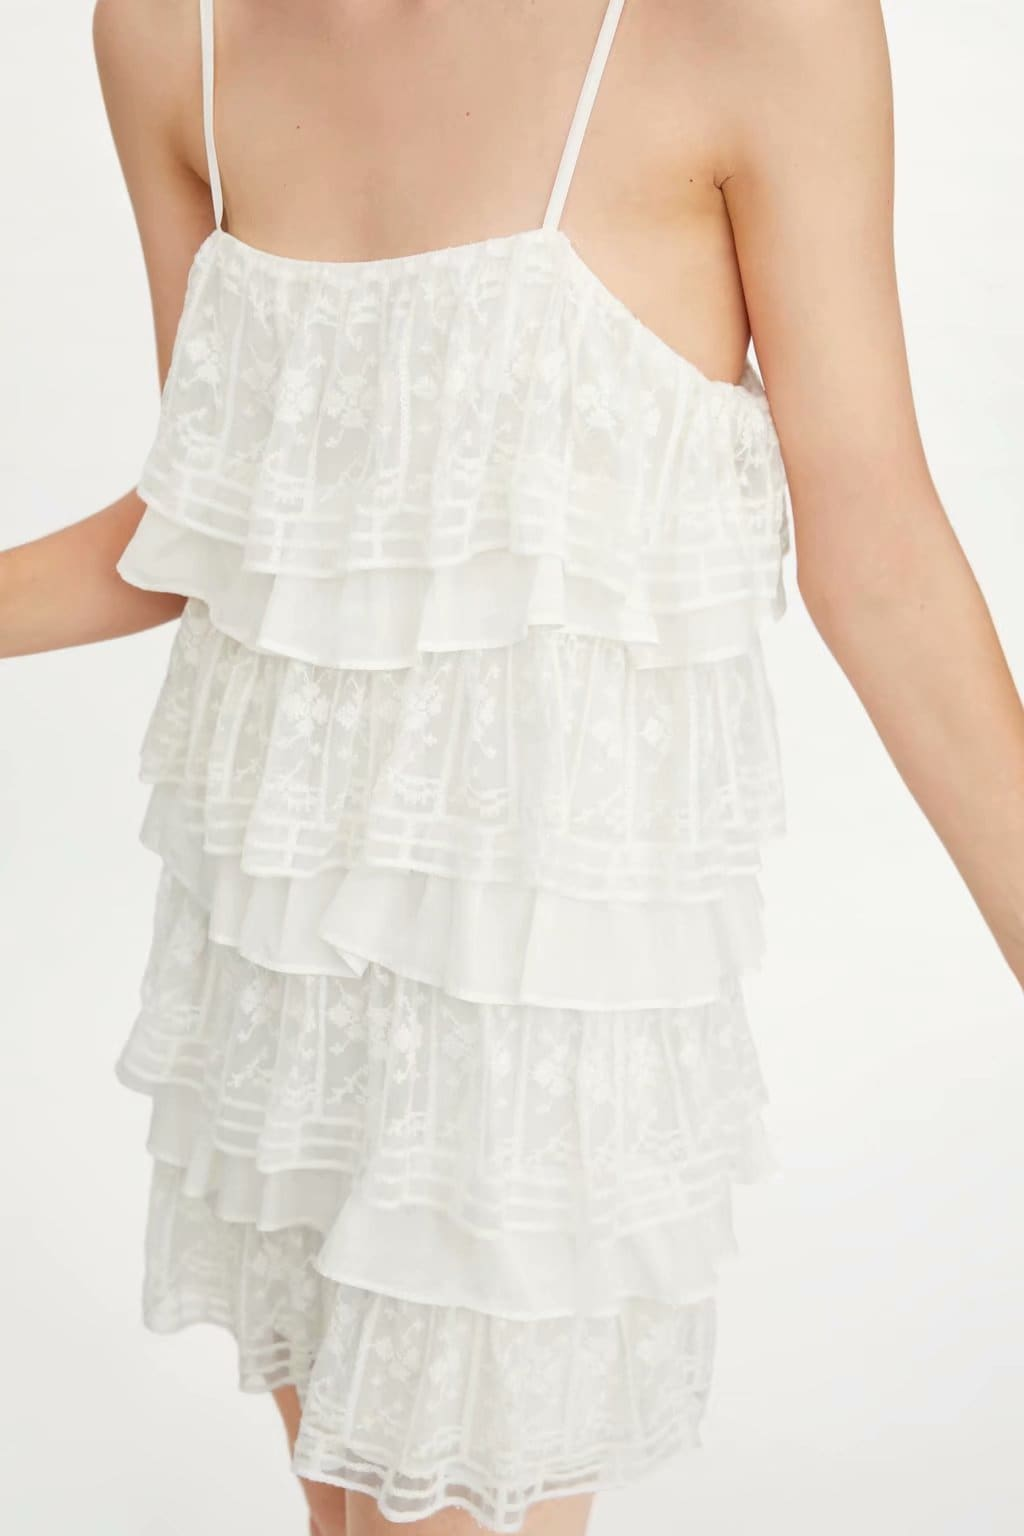 The Best White Dress Lace Condole Belt Party Embroidery Summer Mini Women Dress Online - Source Silk